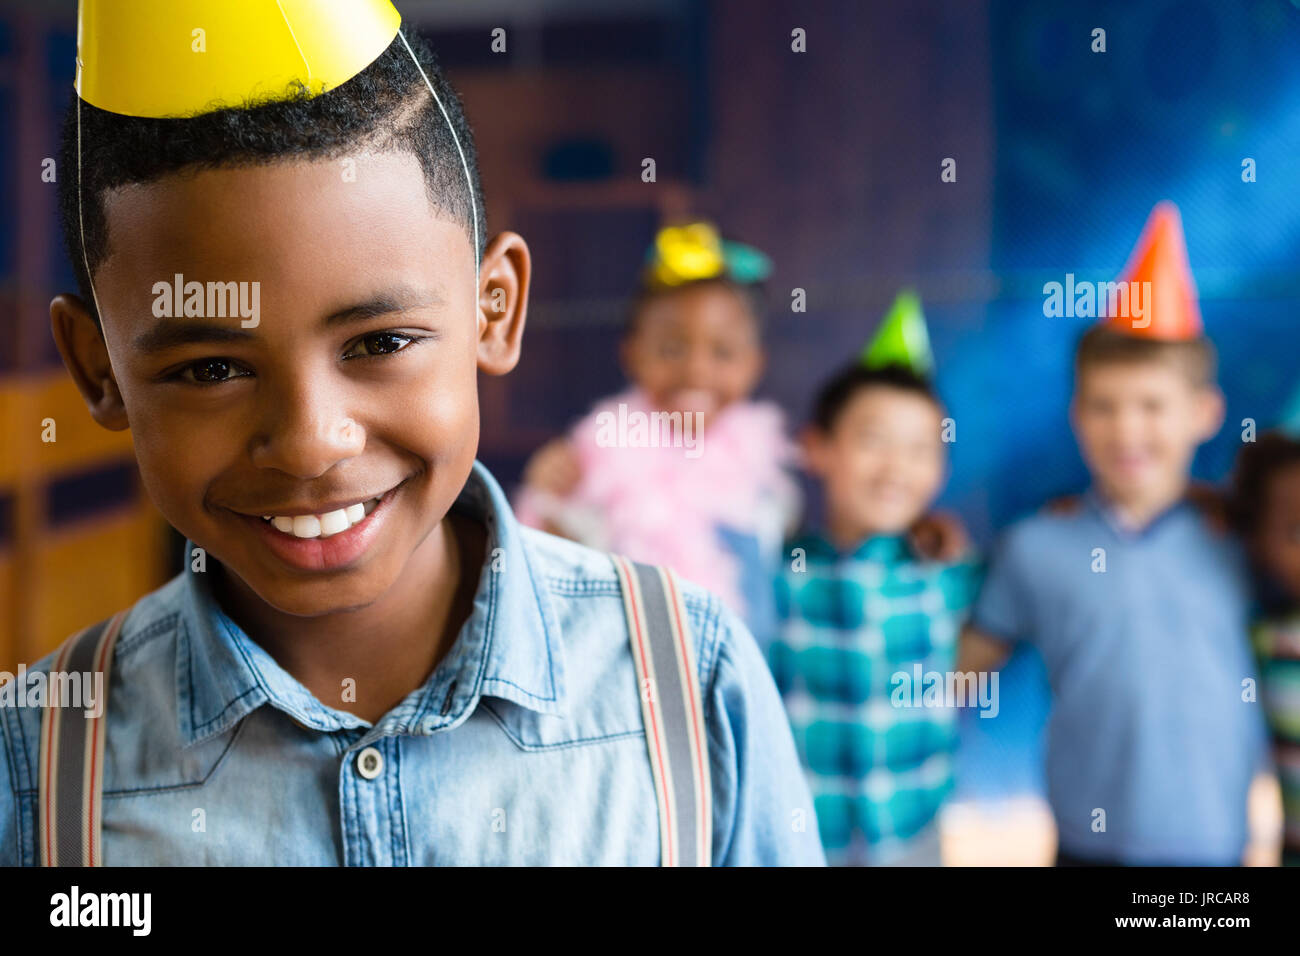 Portrait of boy wearing suspenders with friends in background during birthday party - Stock Image